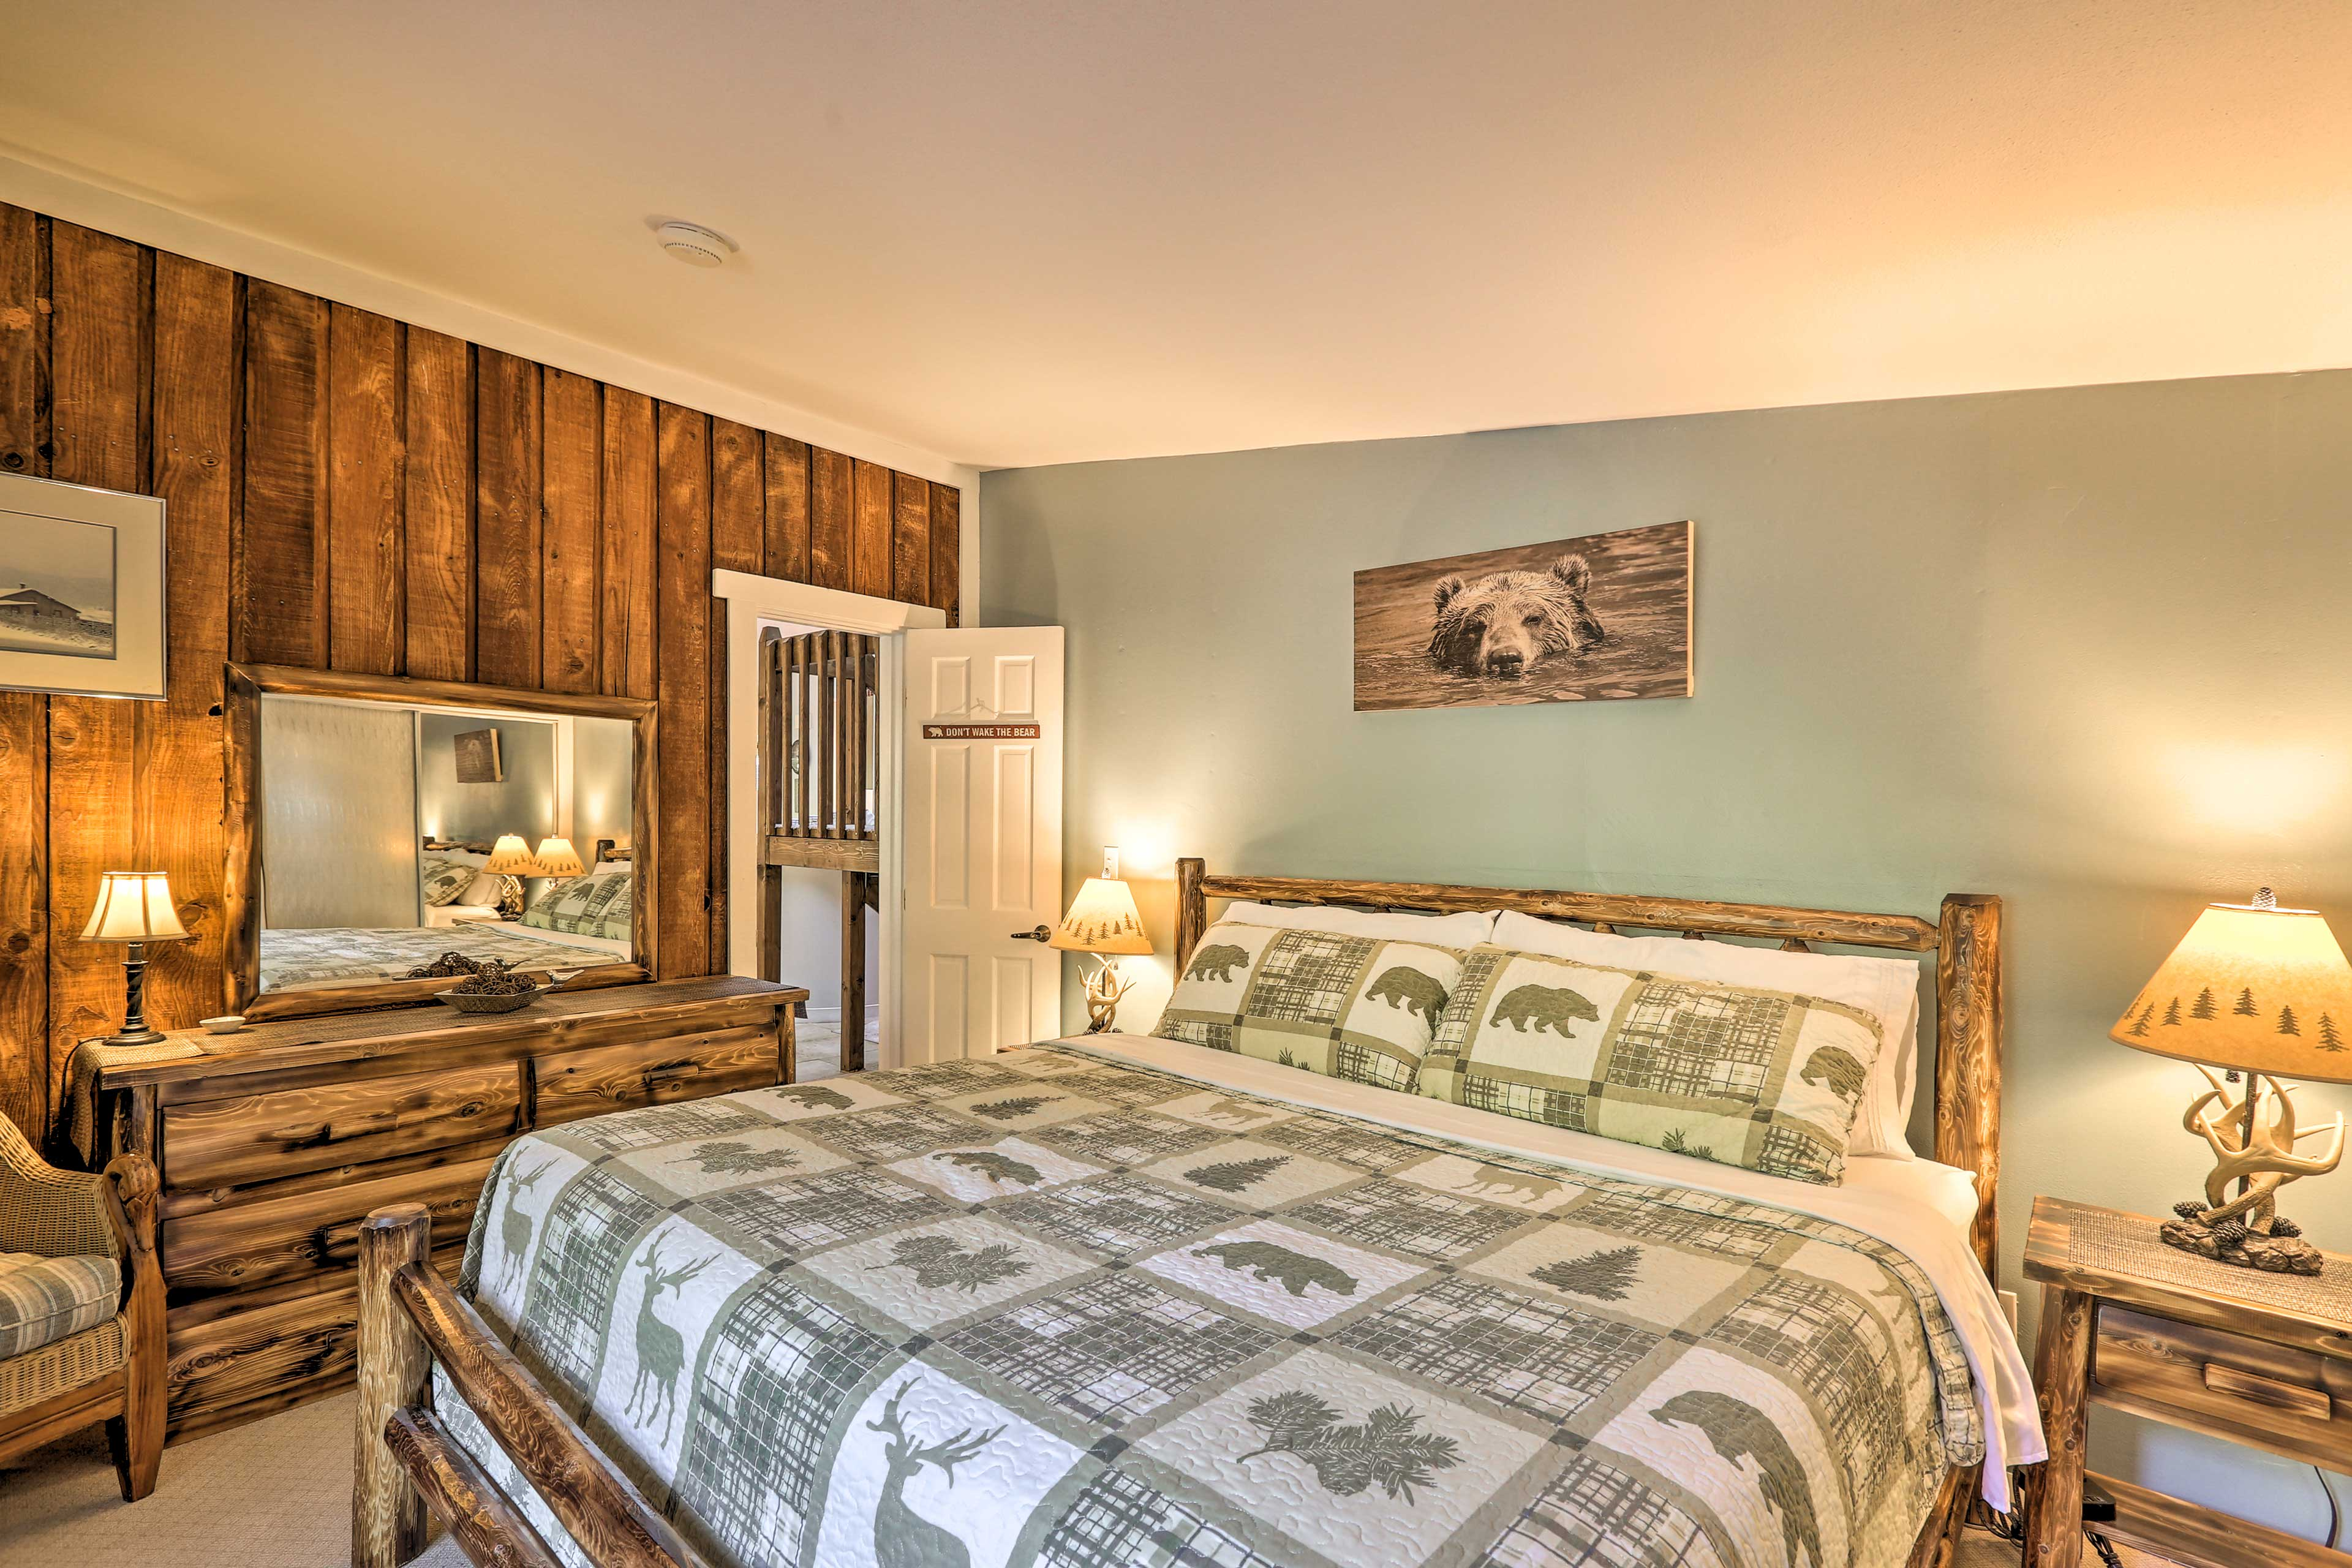 The second bedroom offers a king bed.